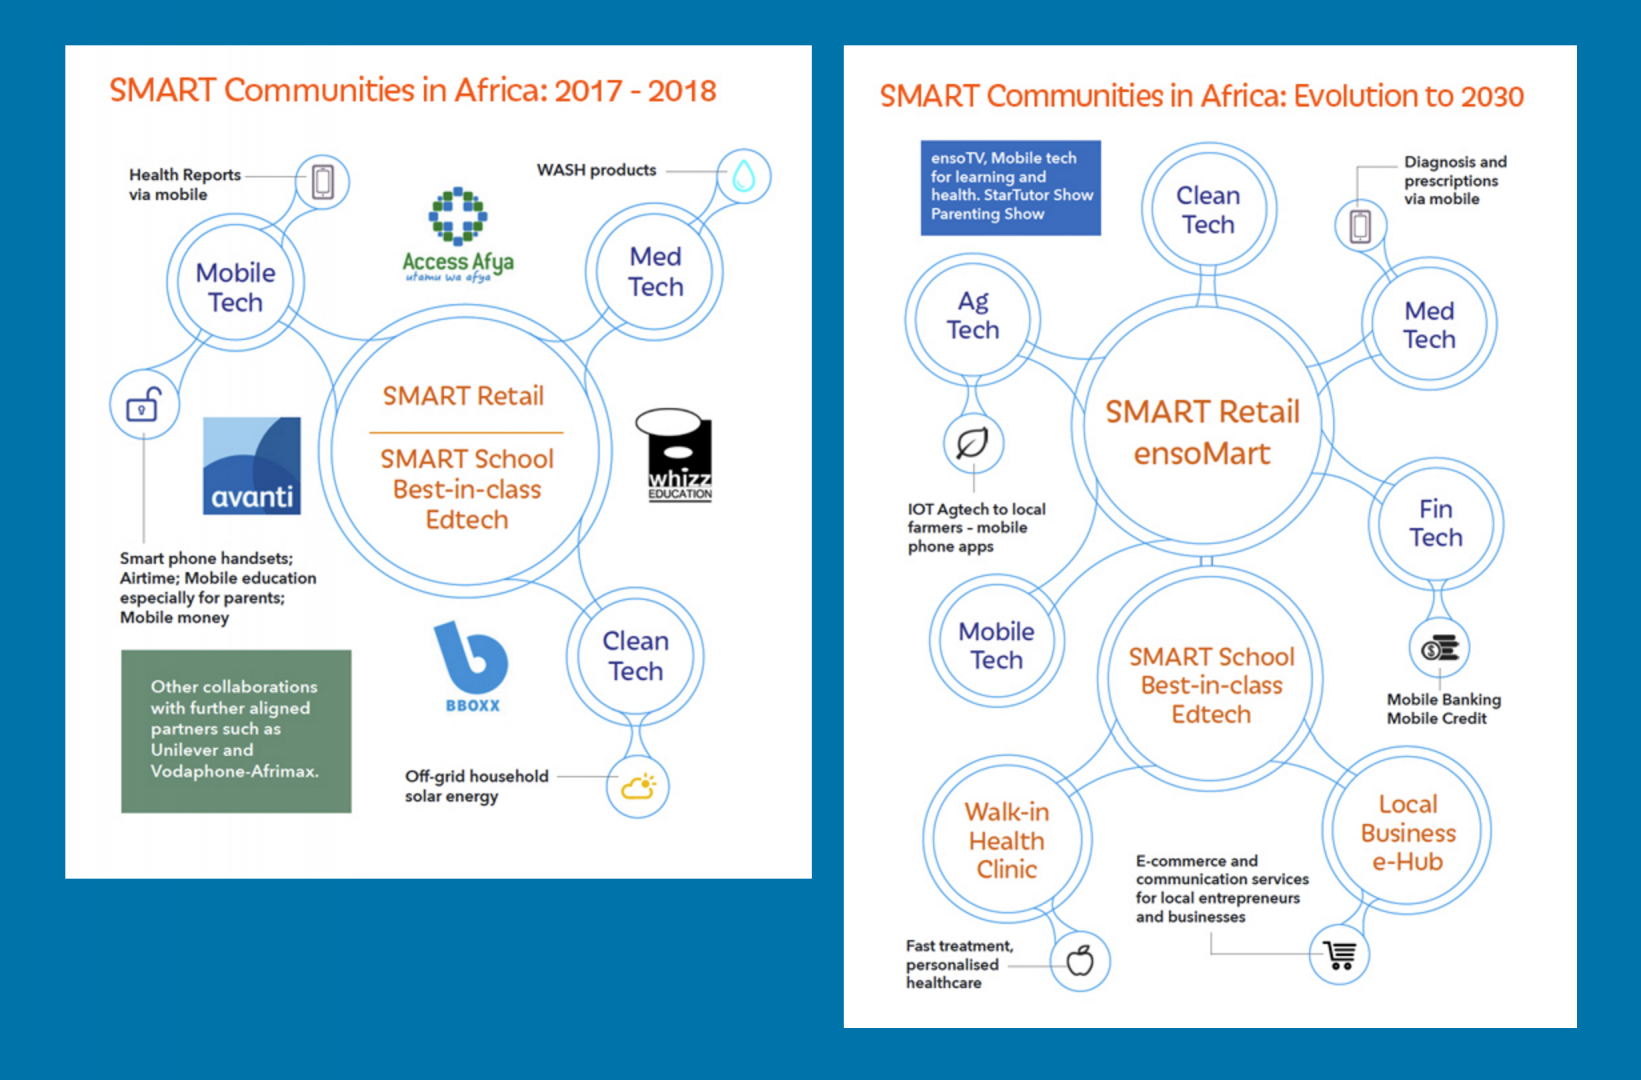 Smart communities in Africa: 2017-2018 and plans up until 2030